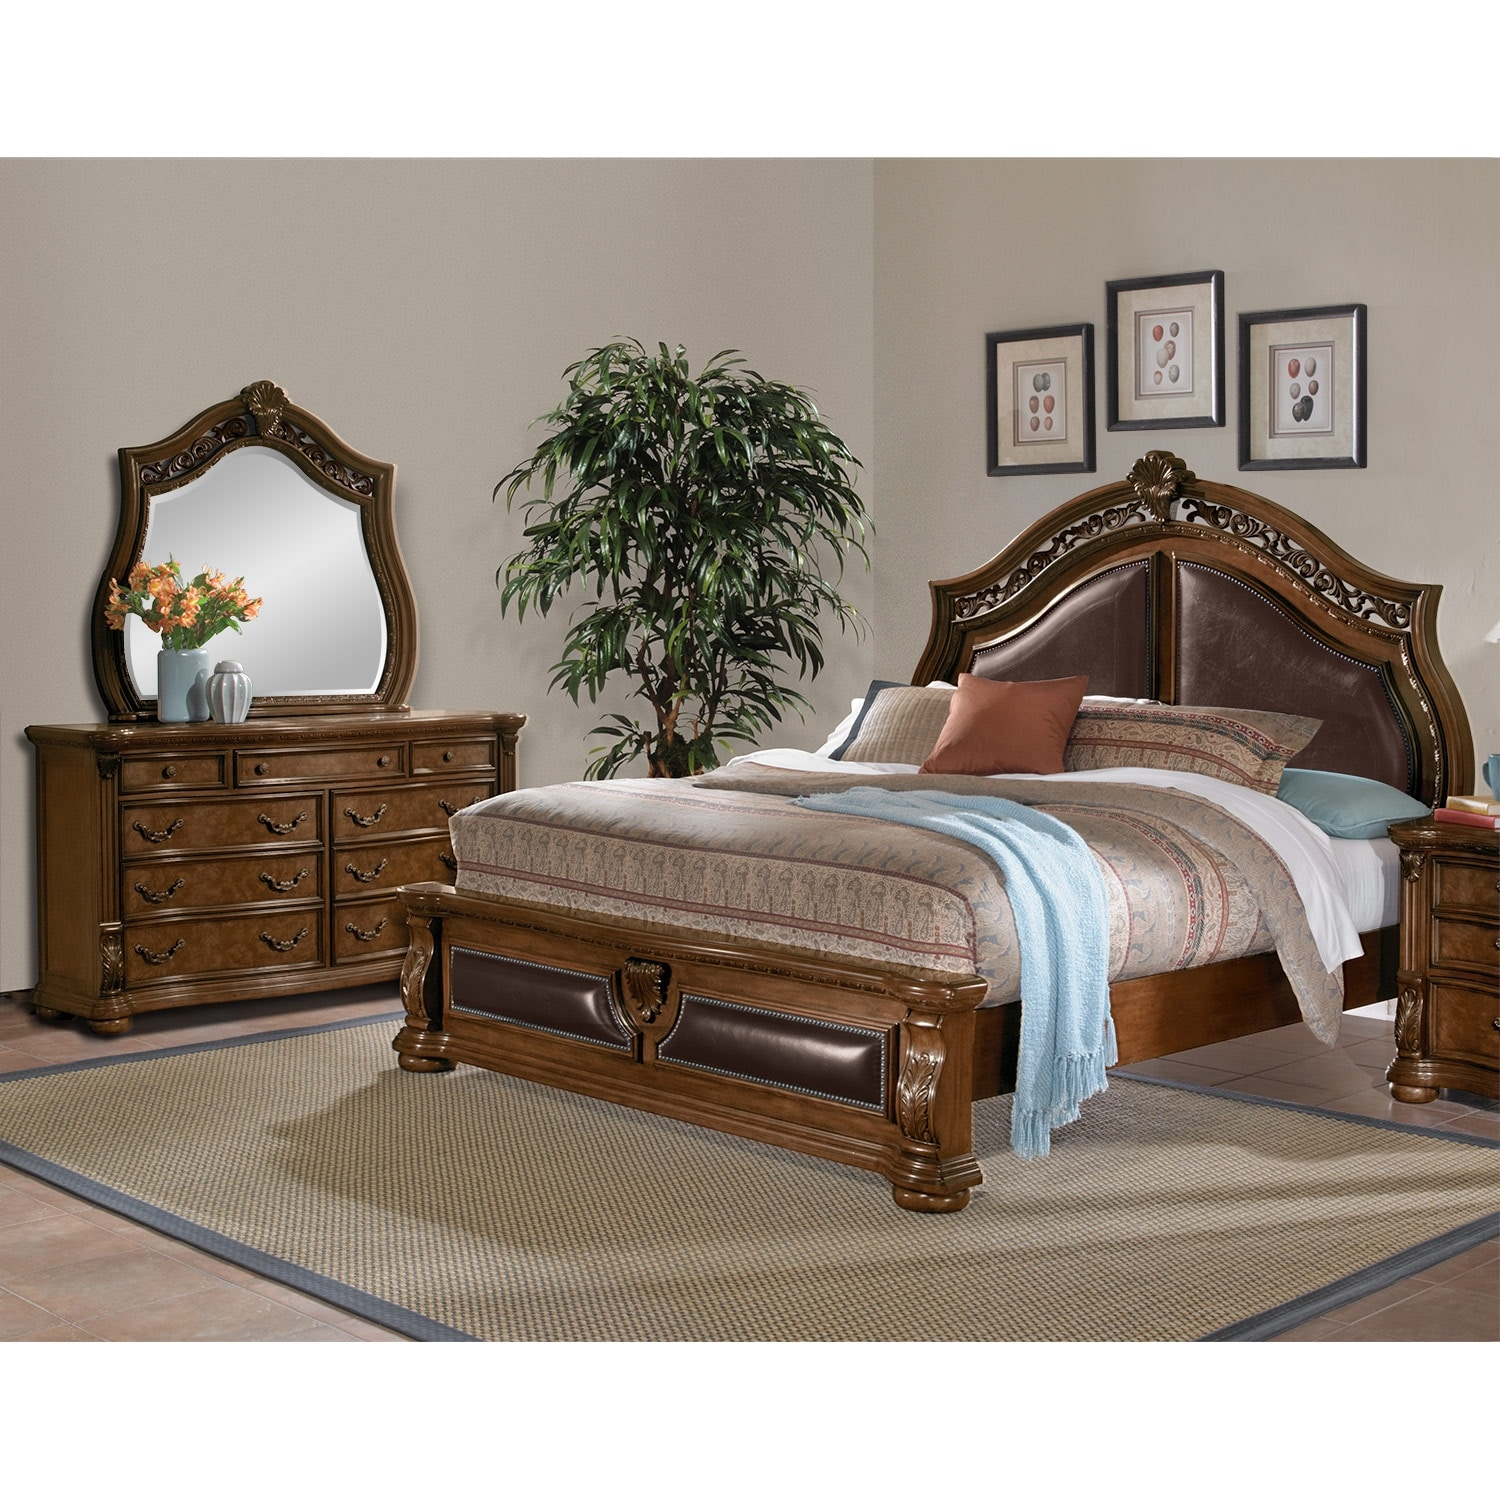 shop bedroom furniture value city furniture 17688 | 376978 fit inside 7c320 320 composite to center center 7c320 320 background color white